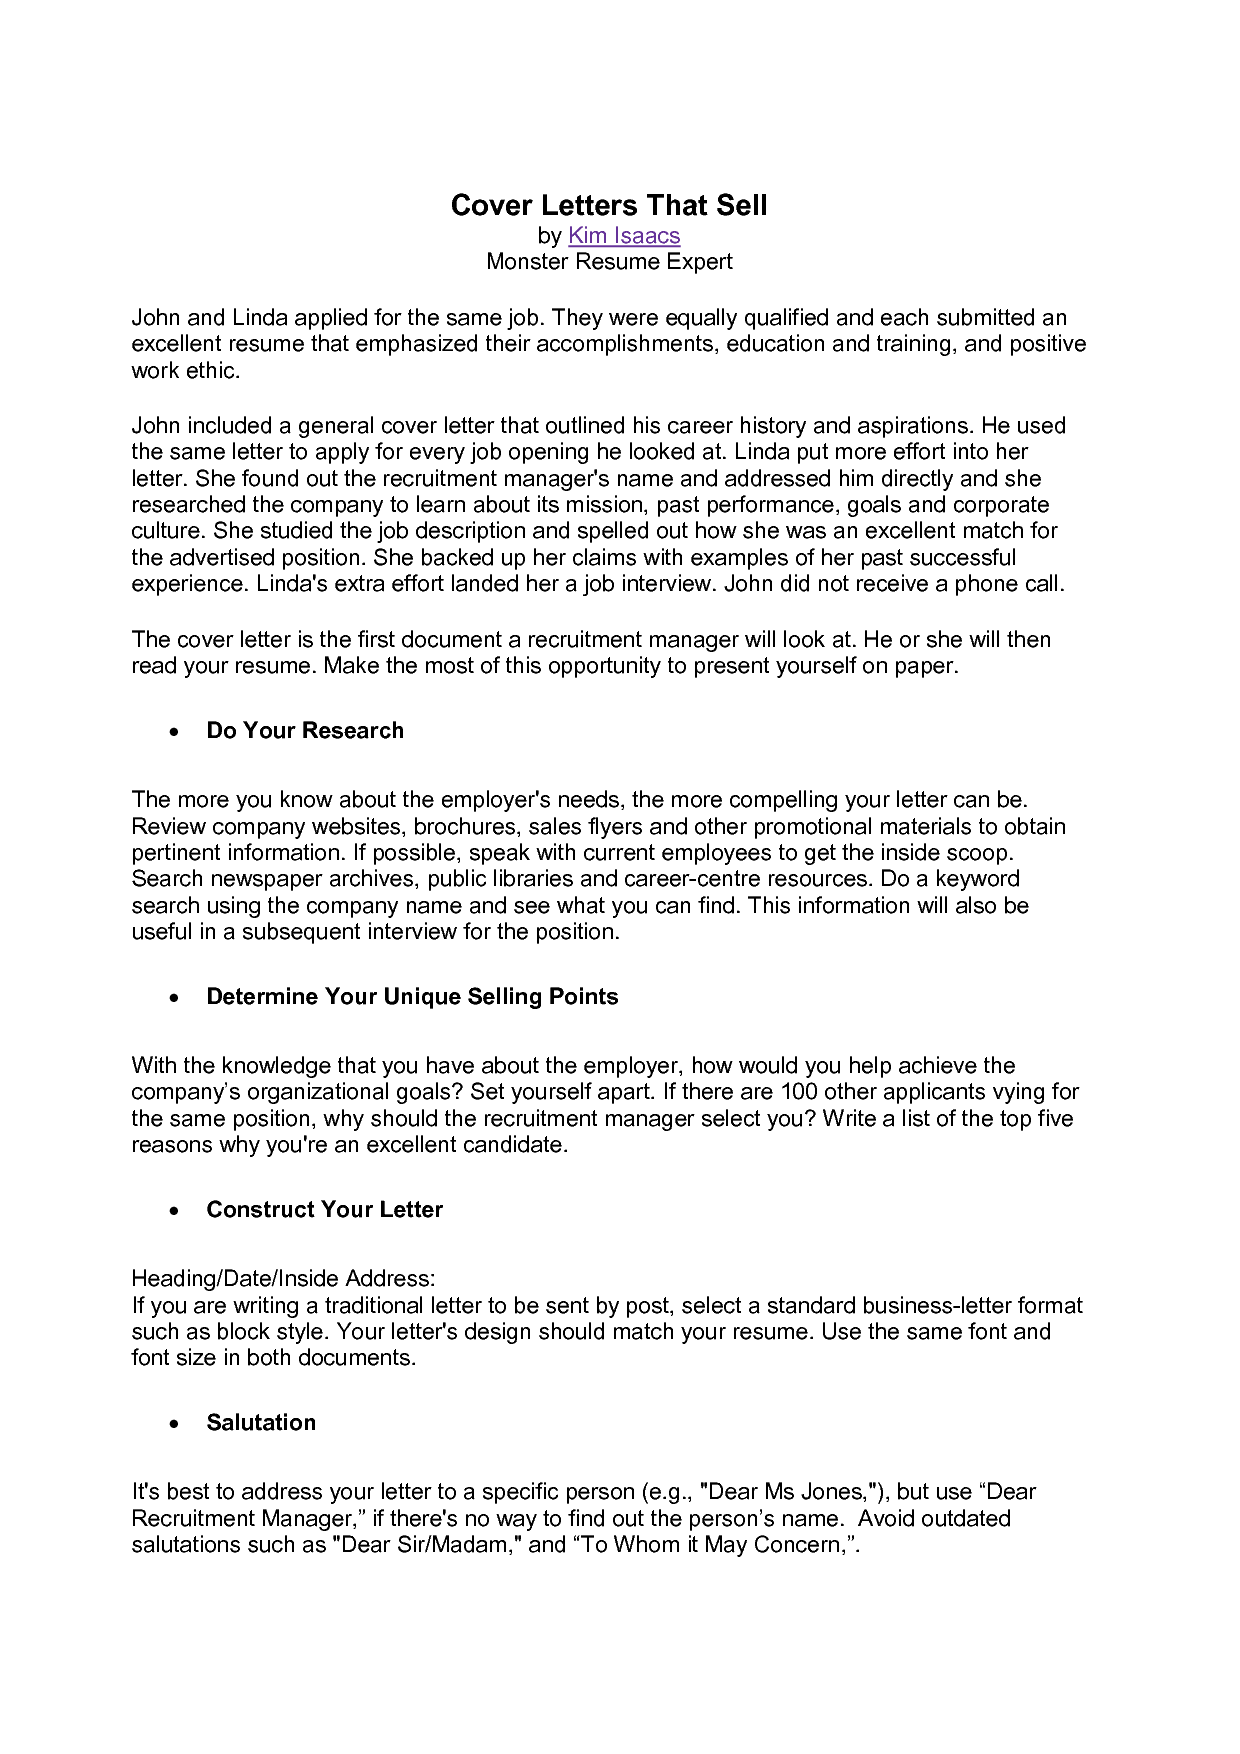 Cover Letter For College Professor Monster Cover Letter Free Download Monster Cover Letter Monster